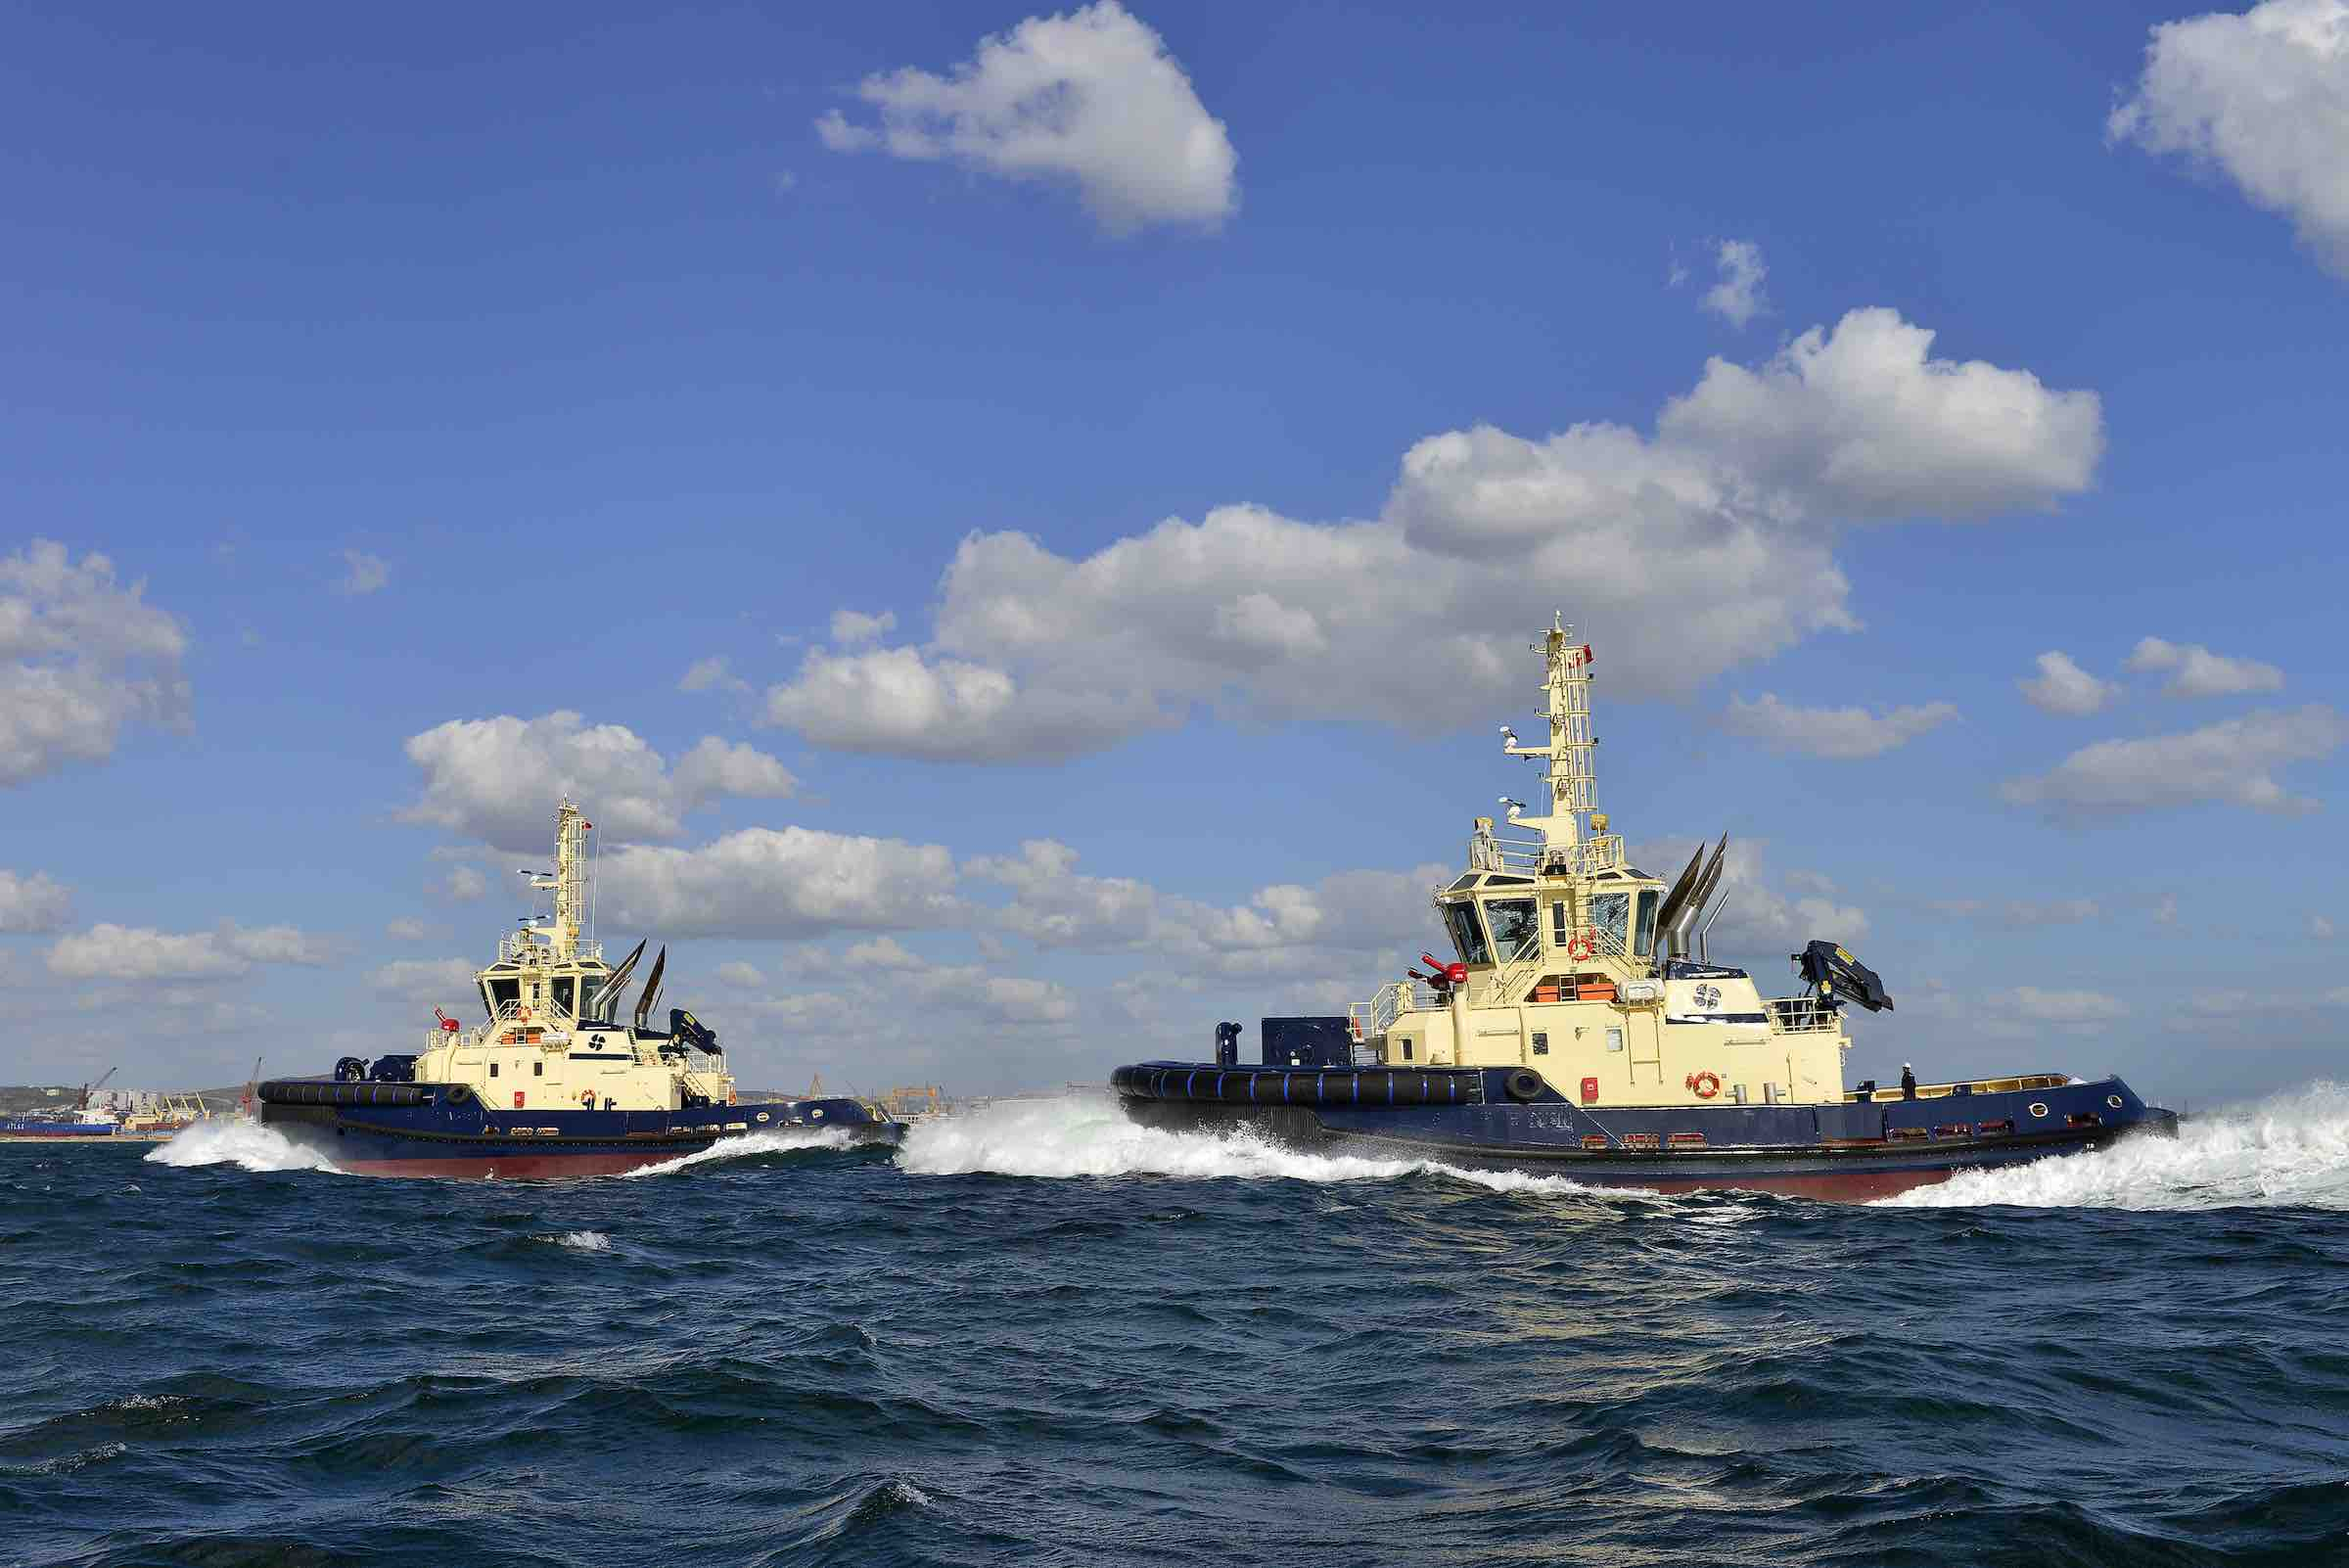 Trials under way of Sanmar's latest advance